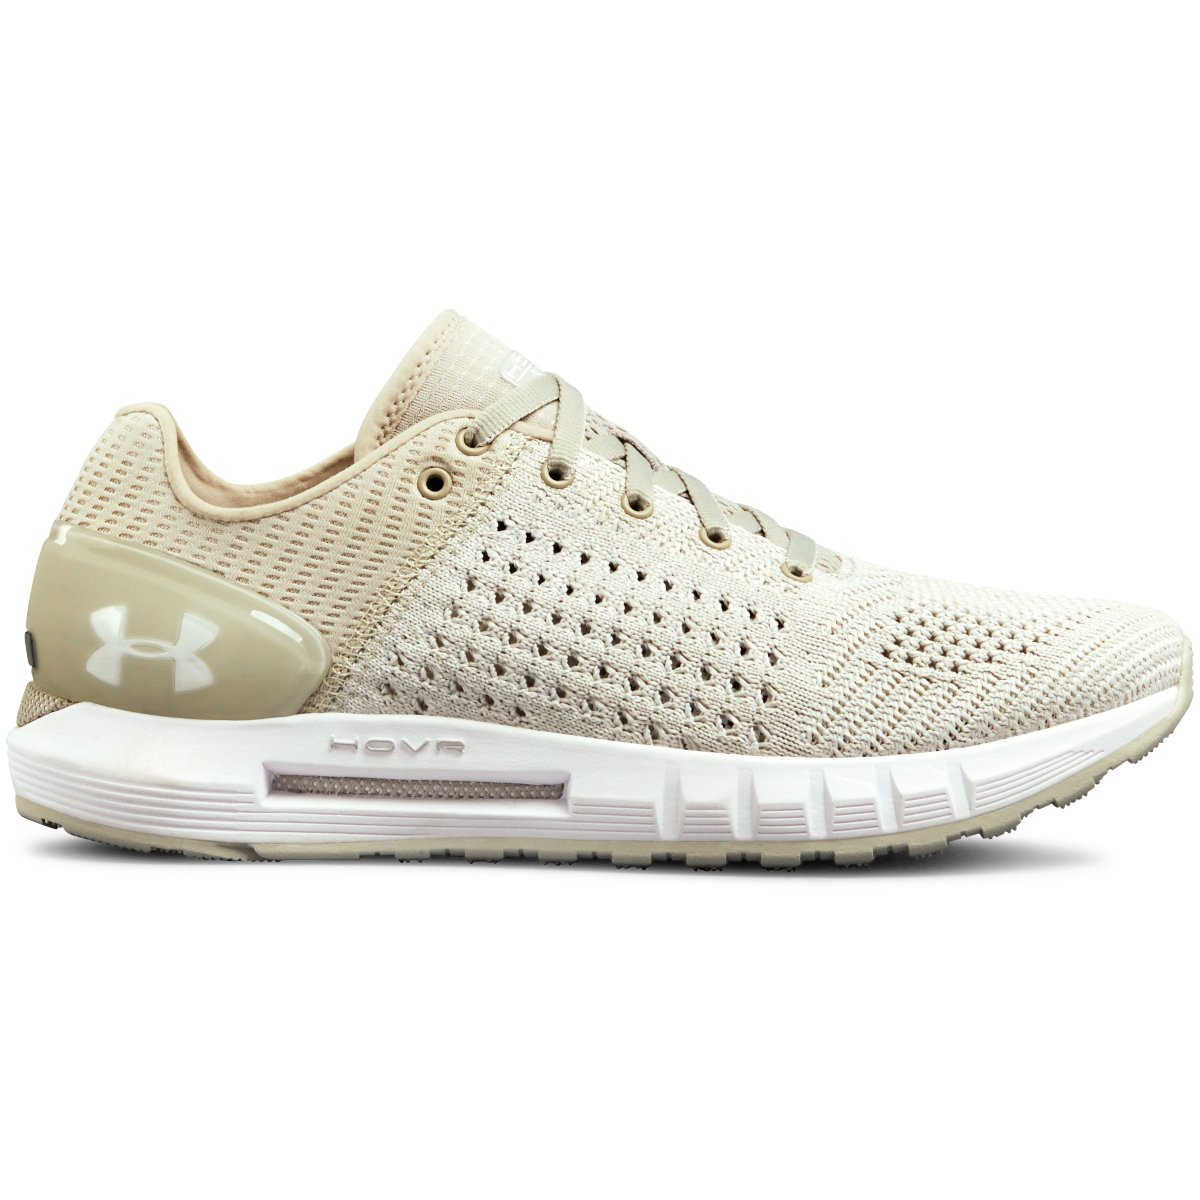 Under Armour Women's HOVR Sonic Run Shoe | Amour